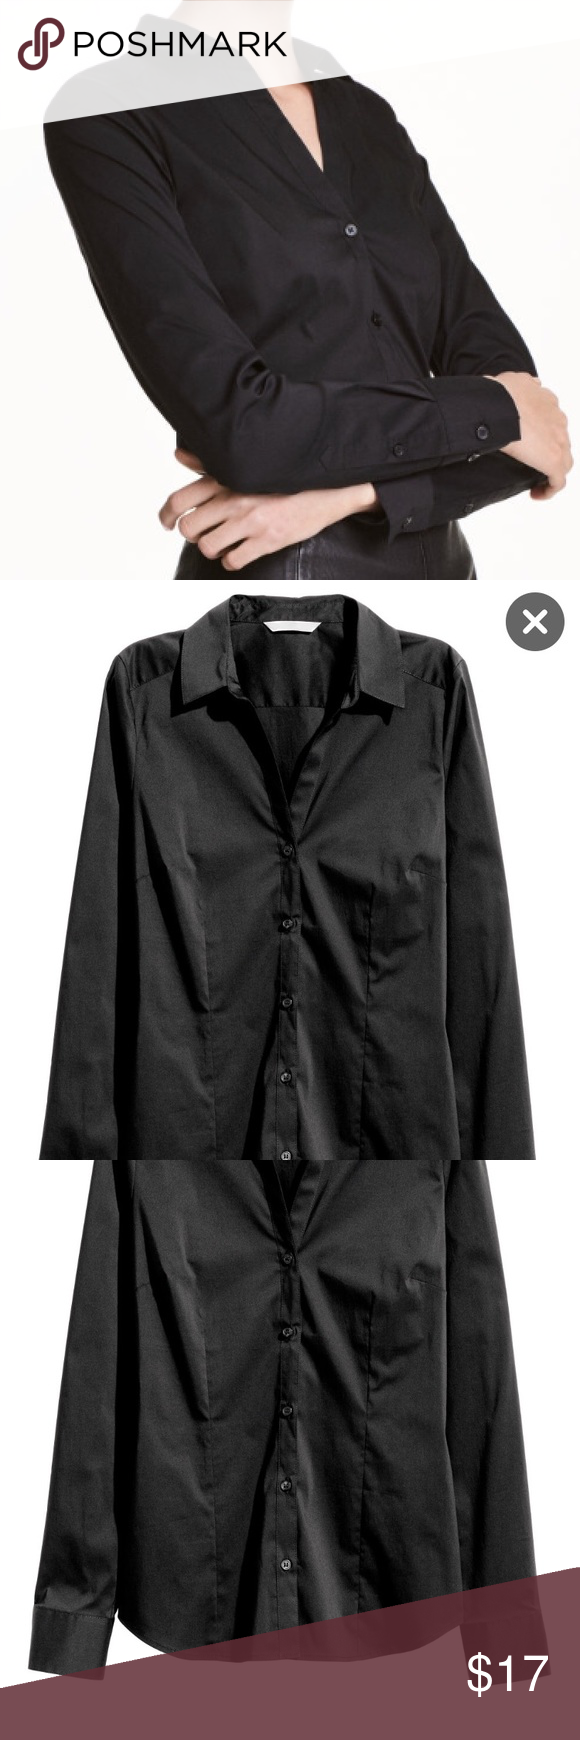 NWOT H&M Stretch Button Down Long Sleeved Shirt New without tags. Size 6. Stretch button down shirt - great for work or play! By H&M H&M Tops Button Down Shirts